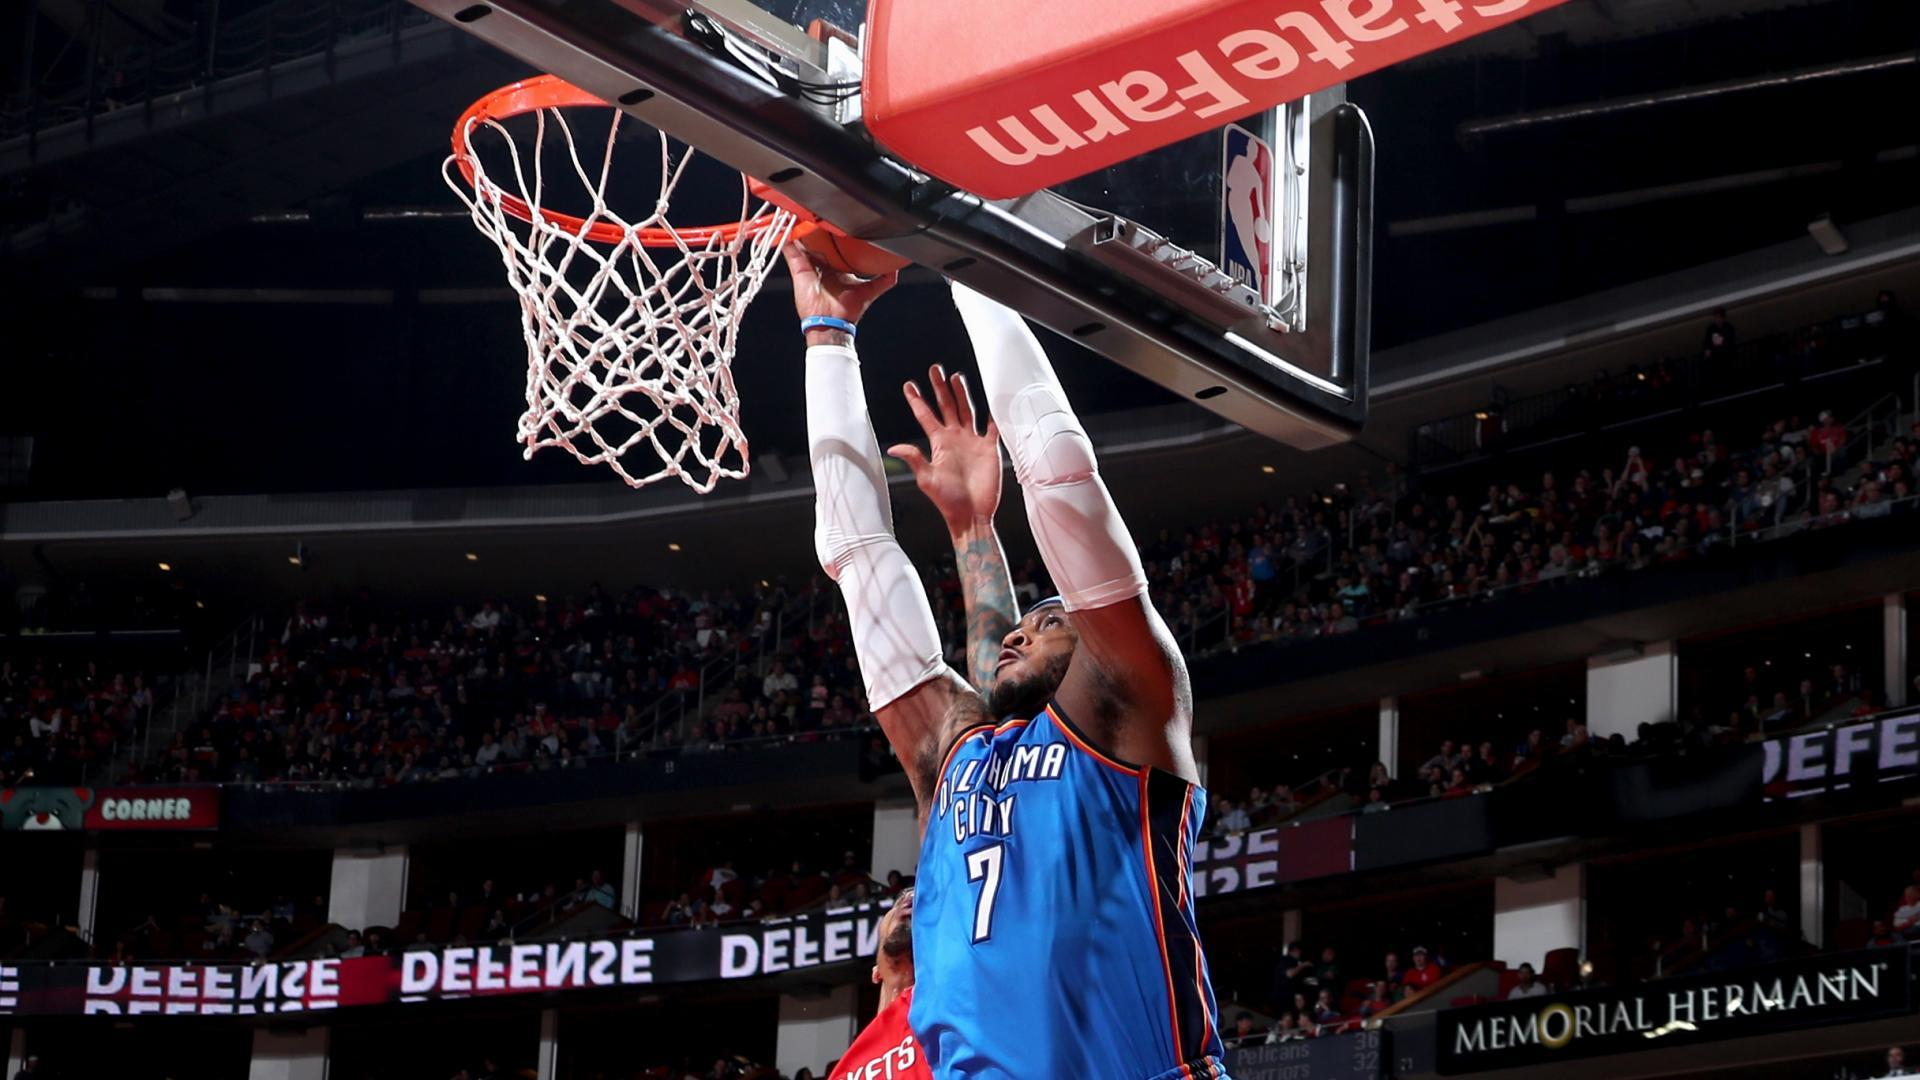 Dunk of the night nba dunk of the night carmelo anthony voltagebd Images